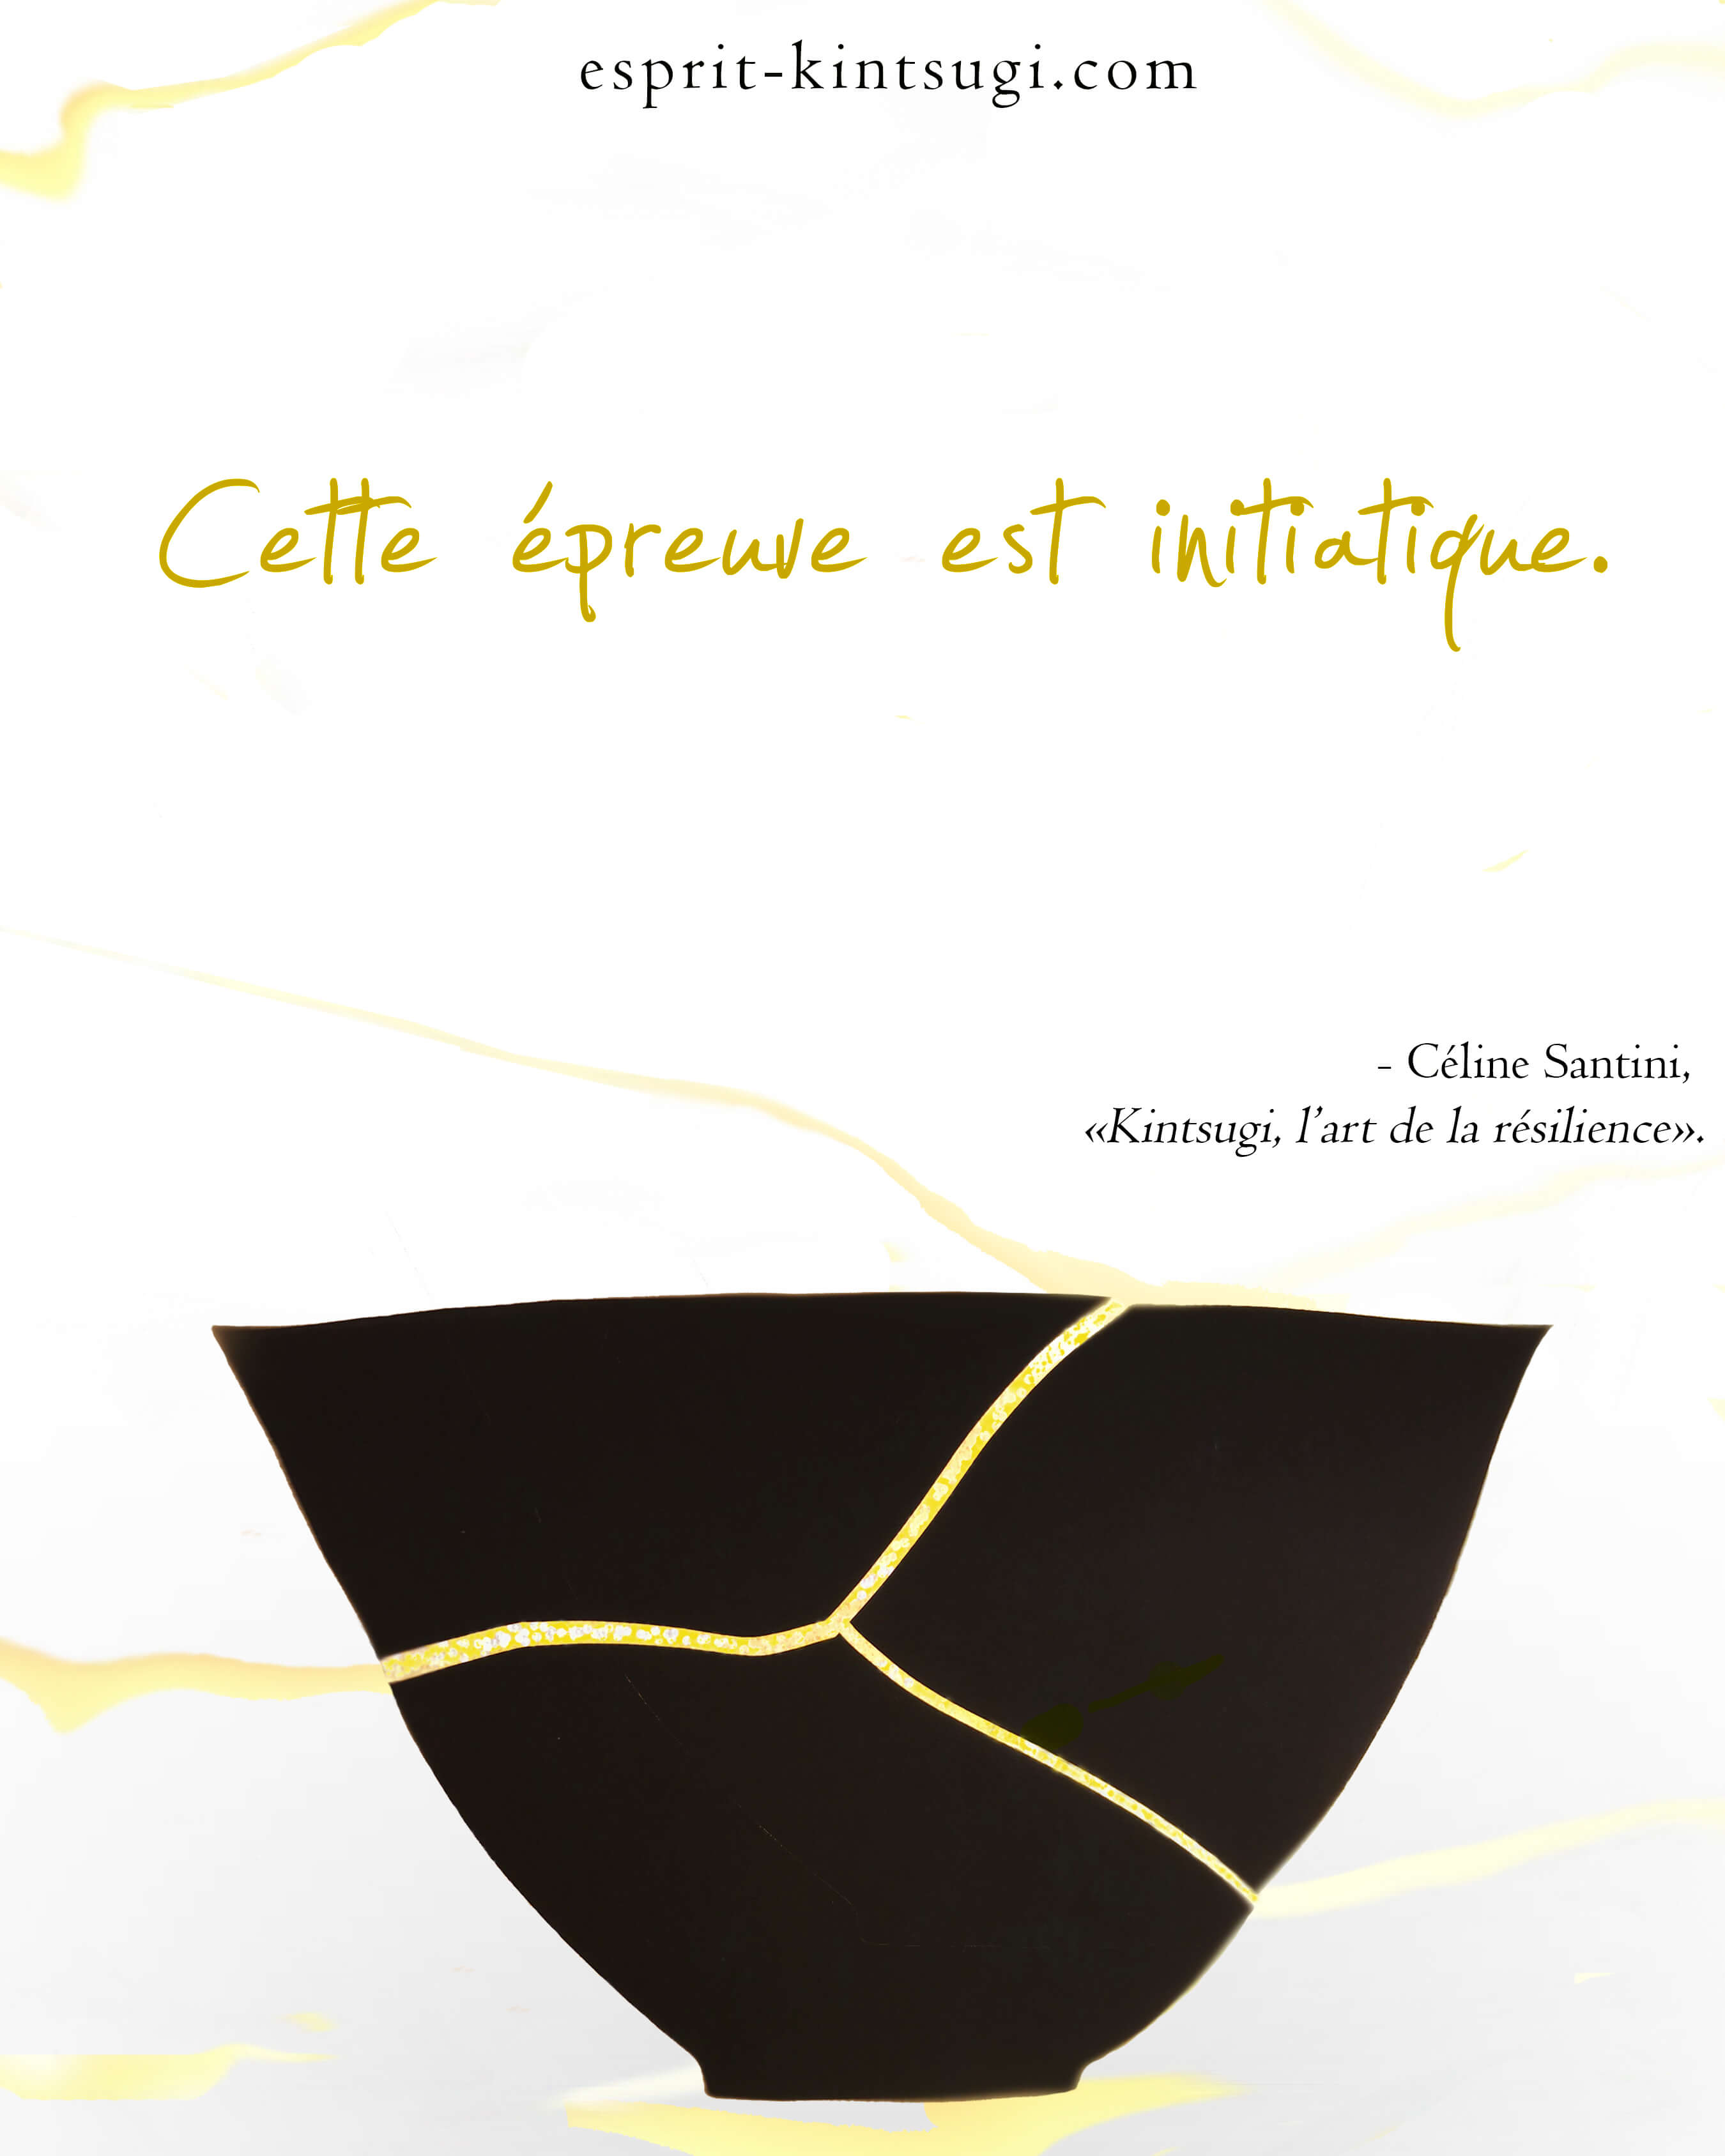 Quotes About Arte Quotes Kintsugi Esprit Kintsugi The Portal Of The Kintsugi